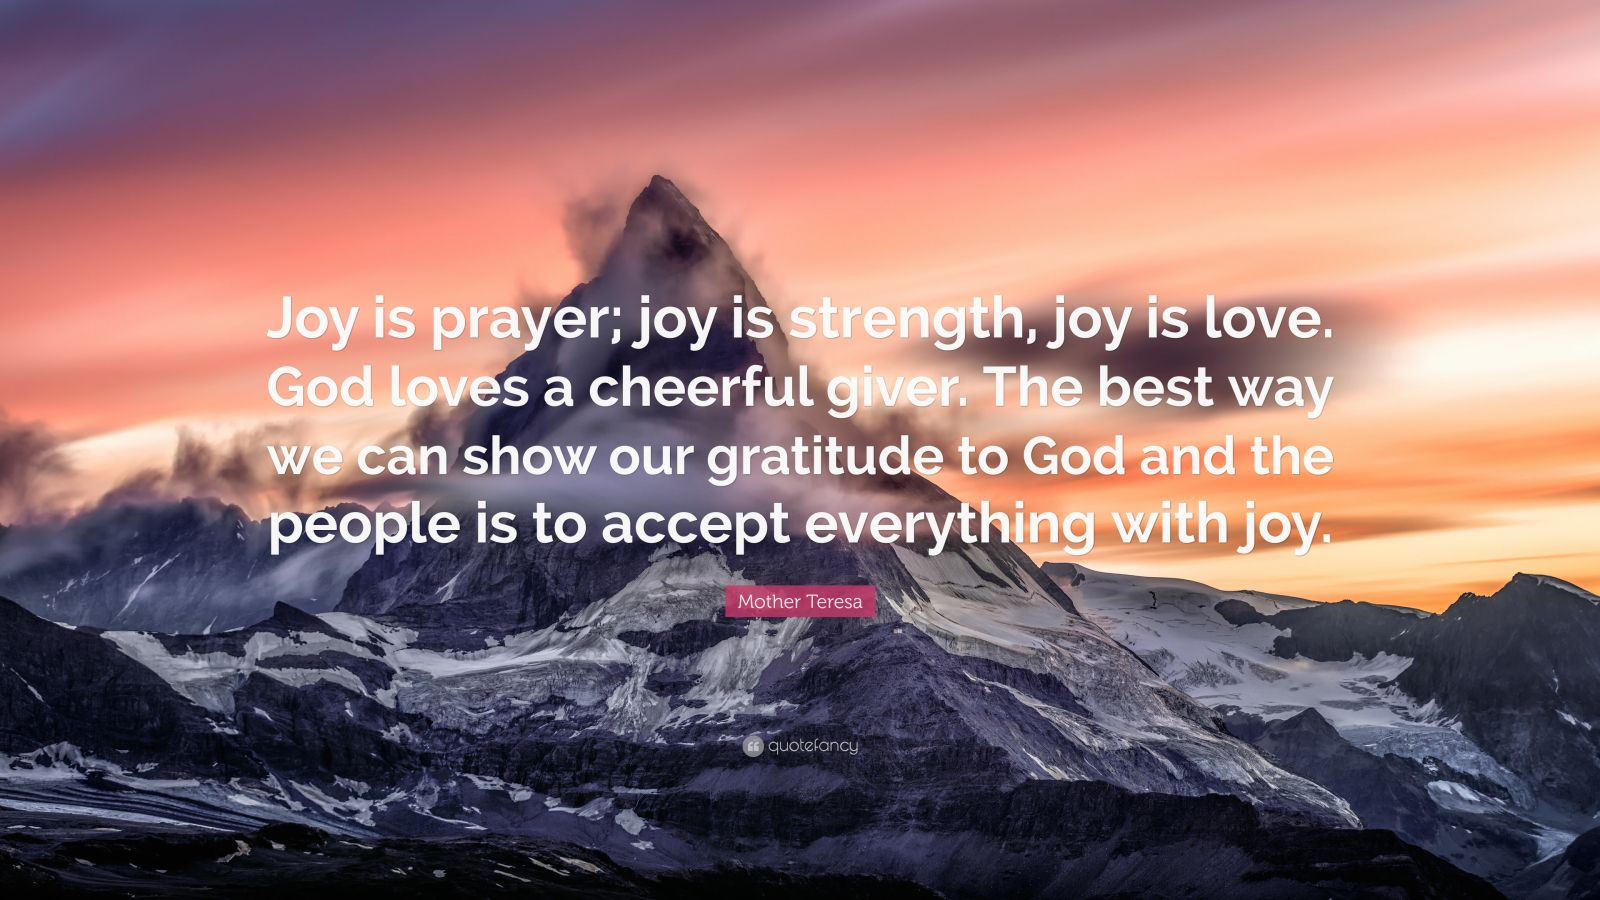 """Mother Teresa Quote: """"Joy is prayer; joy is strength, joy is love. God loves a cheerful giver. The best way we can show our gratitude to God and the people is to accept everything with joy."""""""